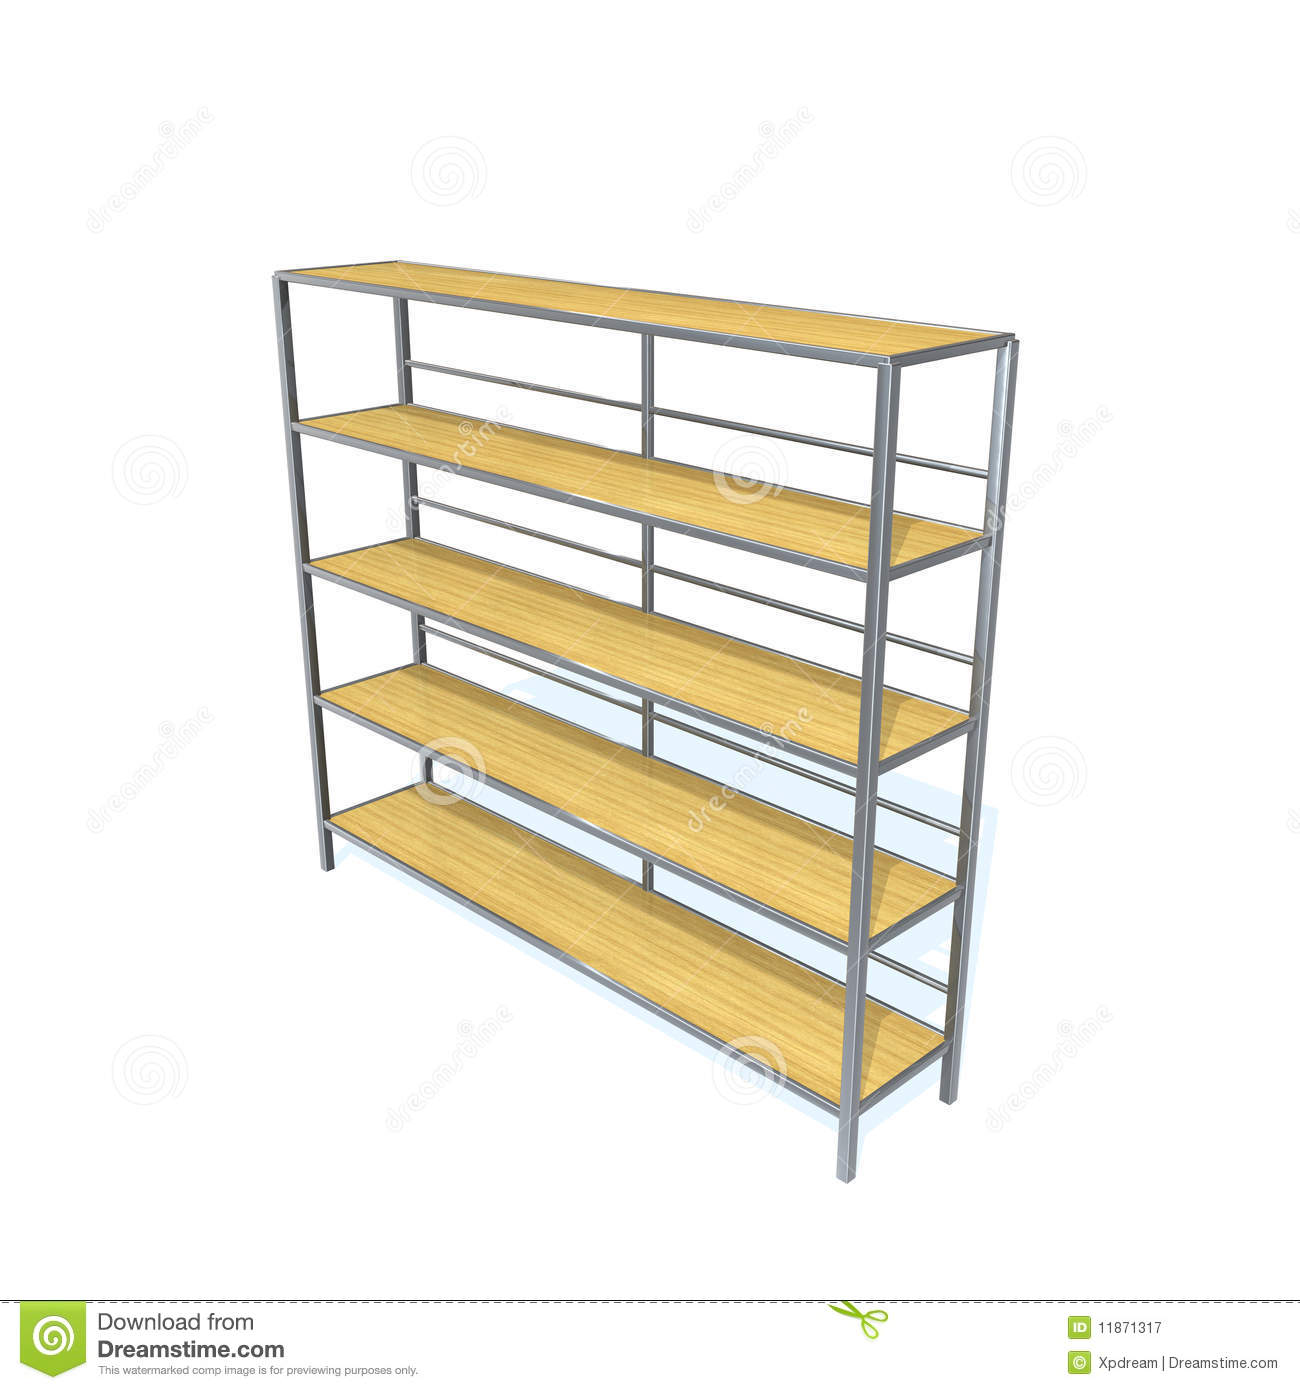 Storage Racks Royalty Free Stock Photography.